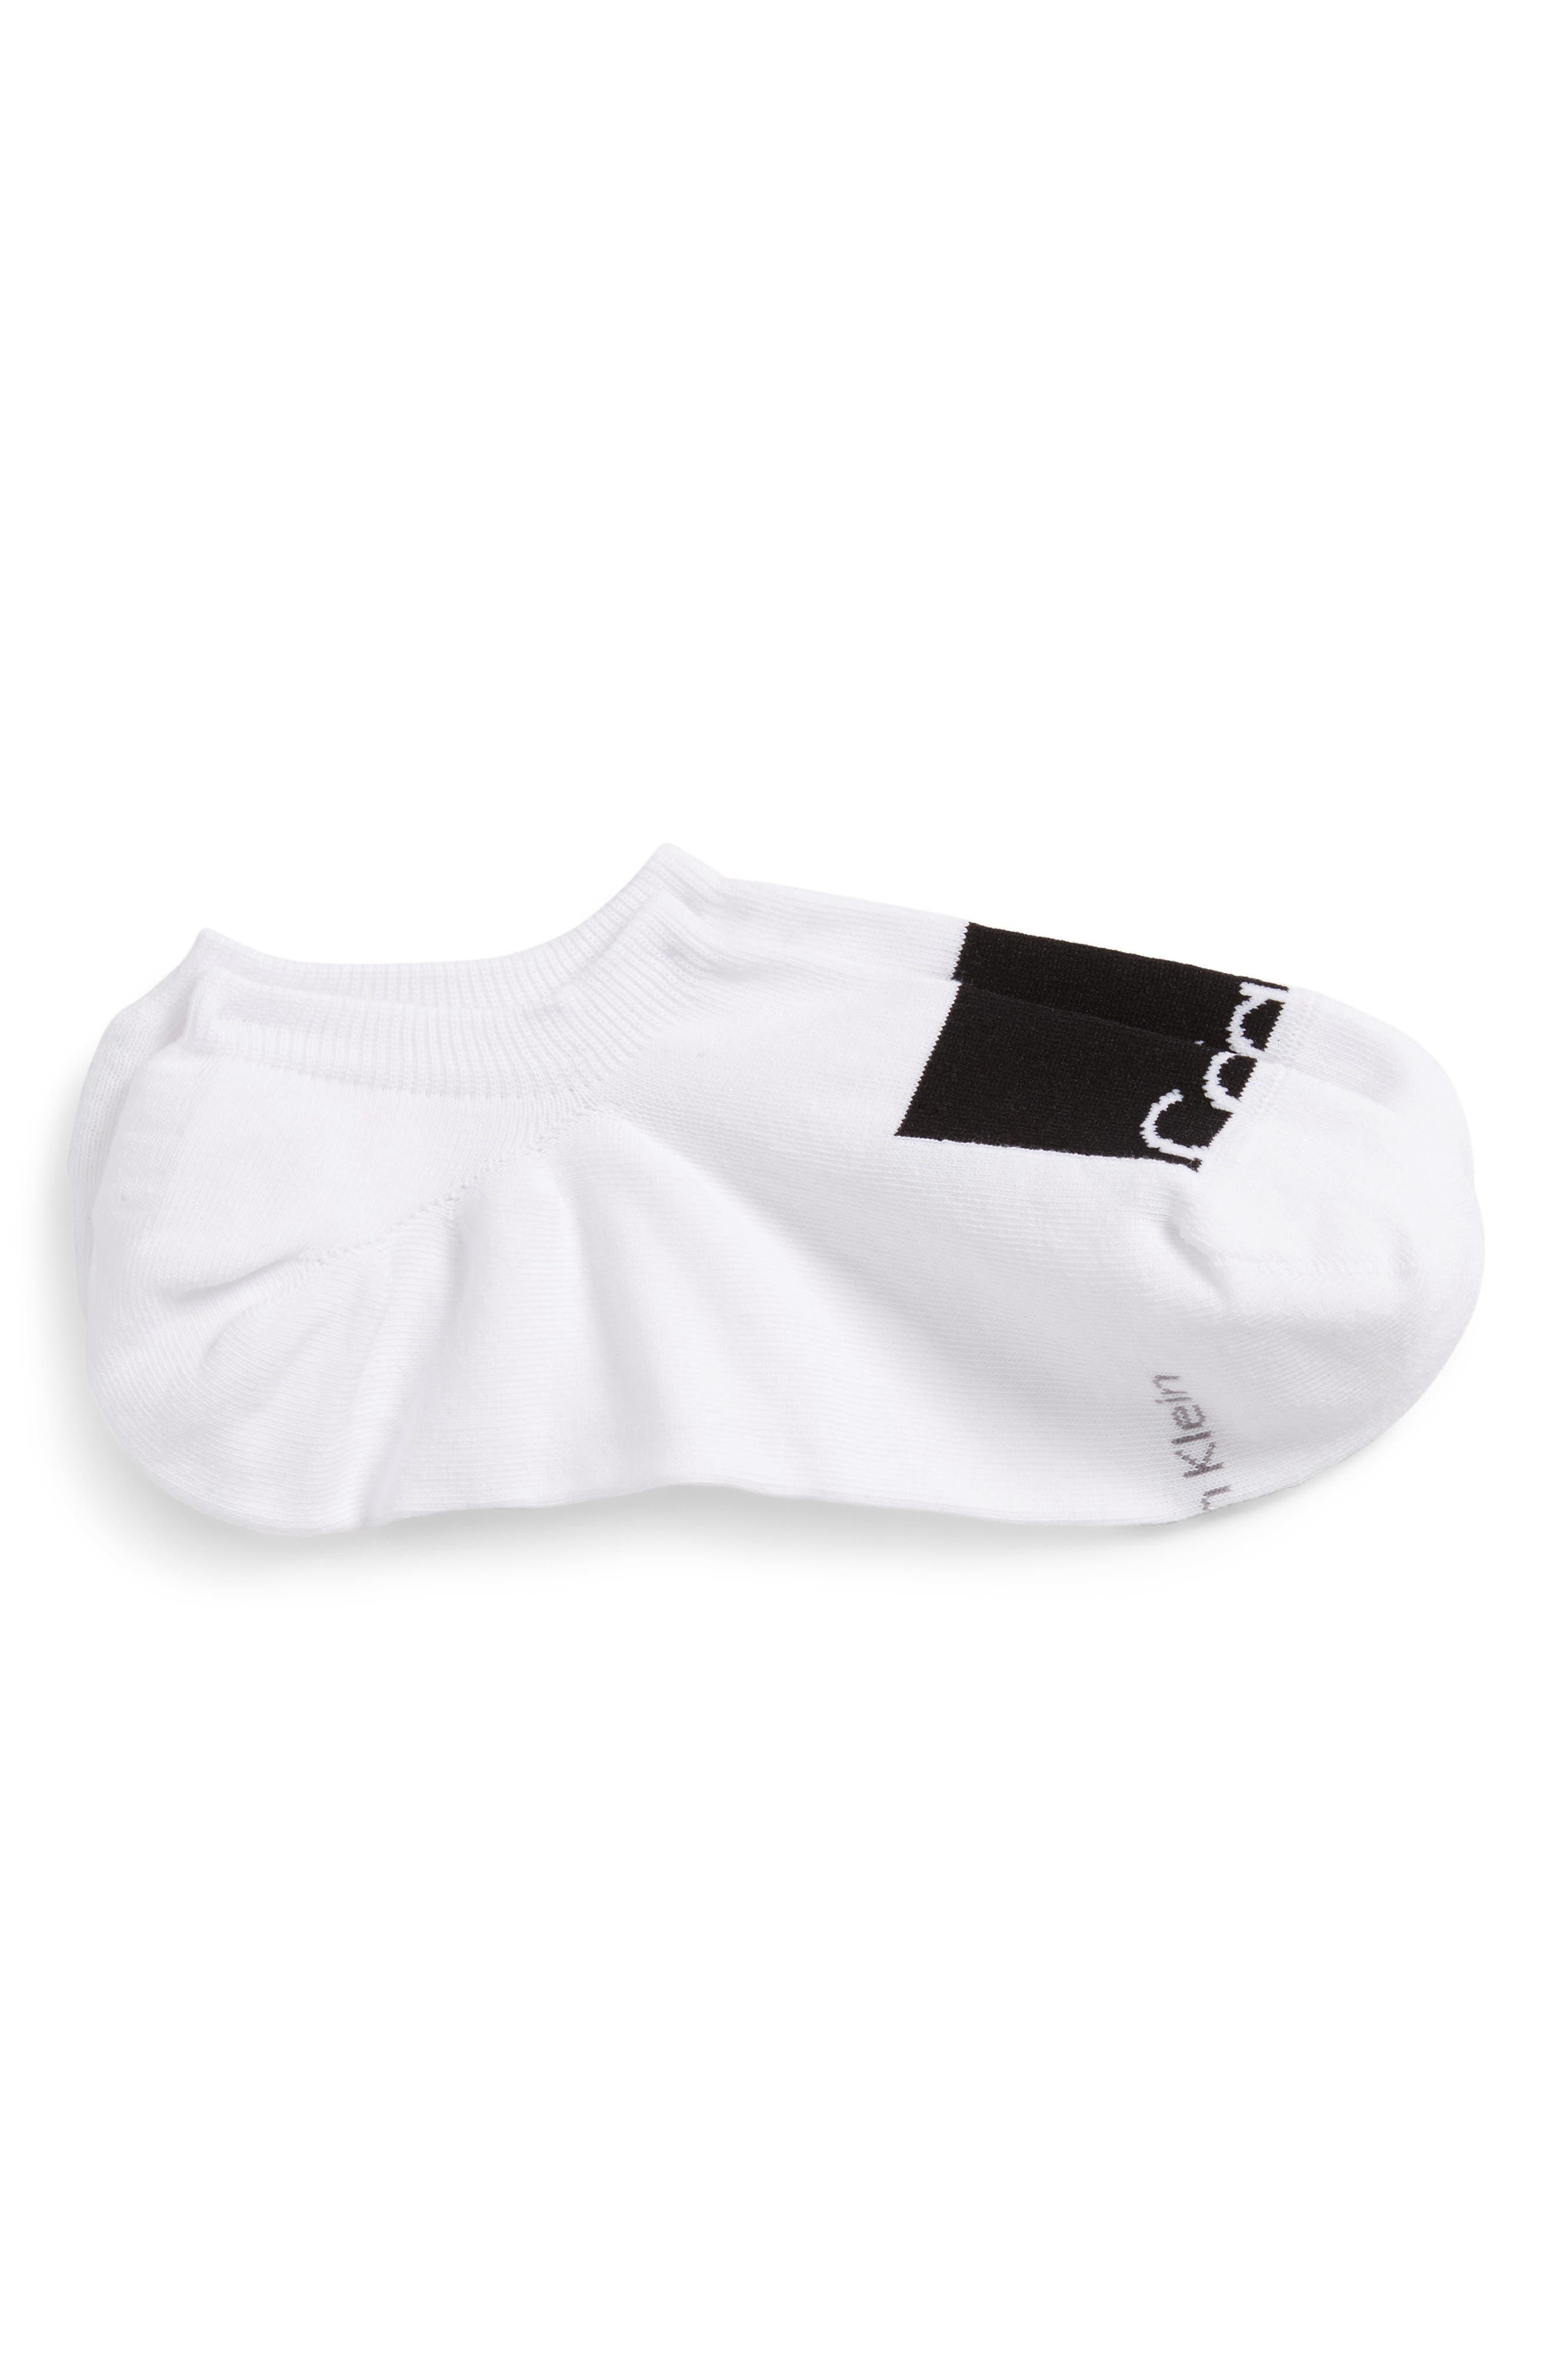 New Gen Logo No-Show Socks,                             Main thumbnail 1, color,                             White